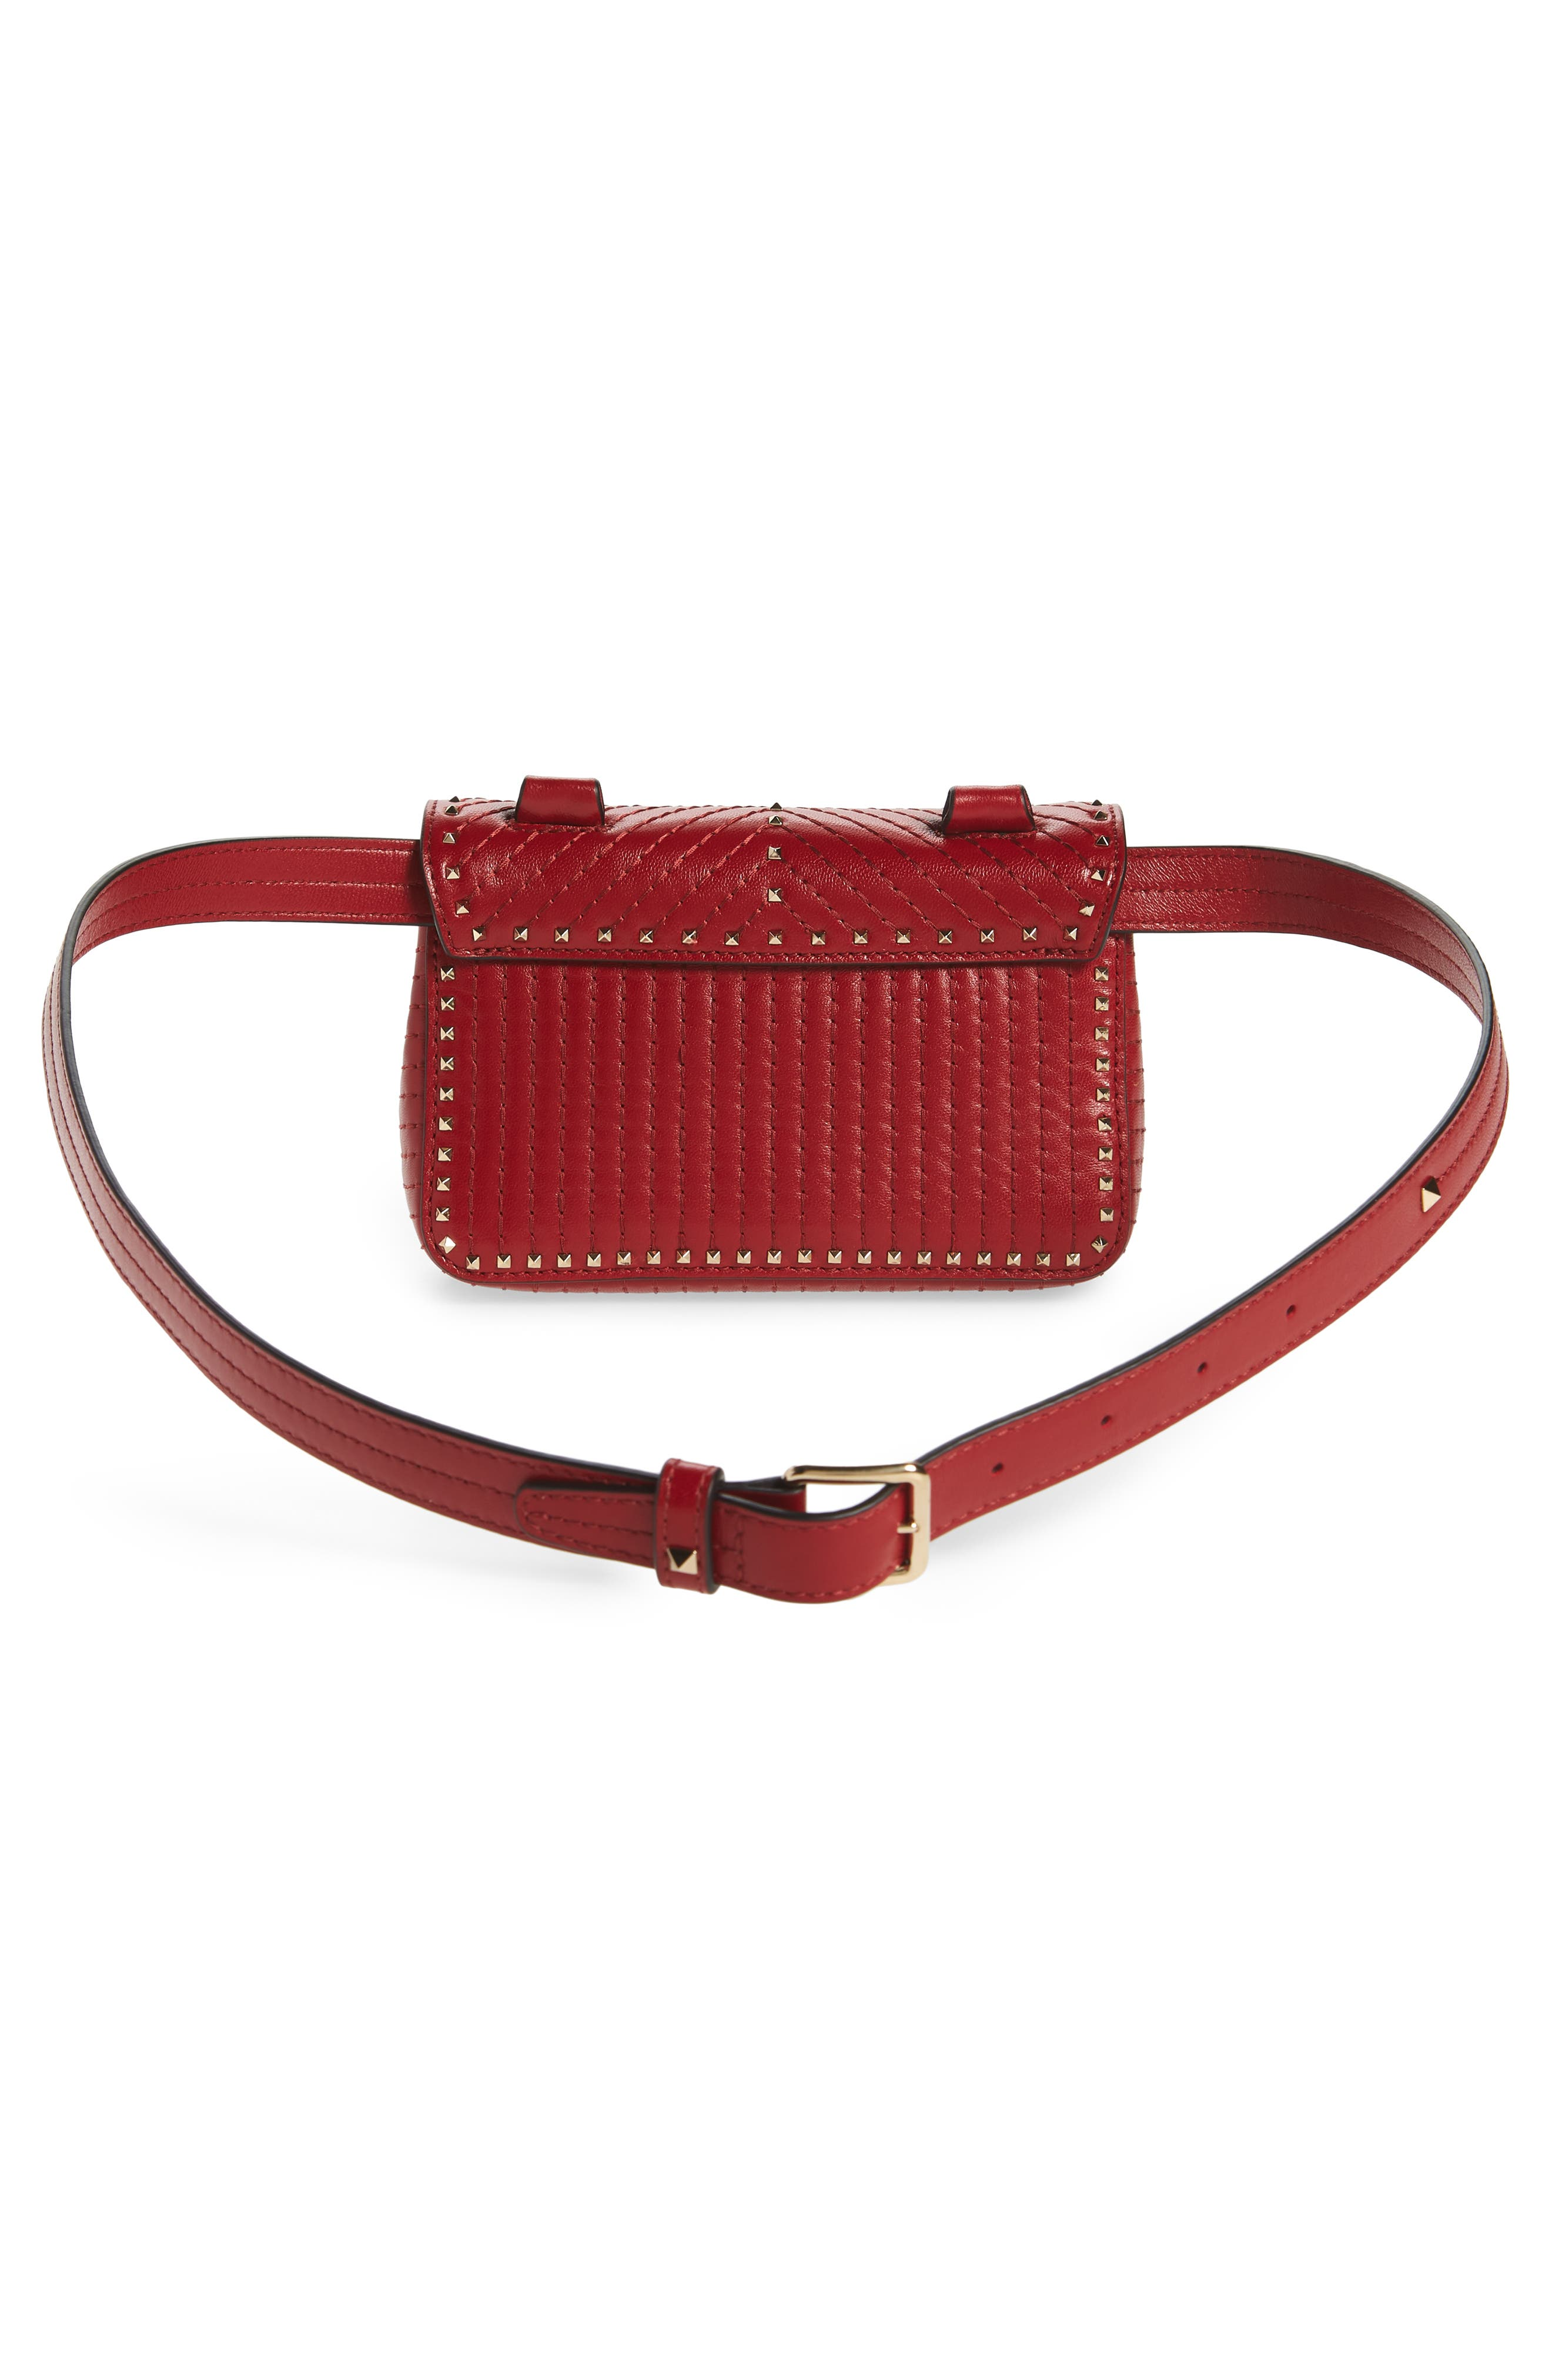 Mini Ziggystud Leather Convertible Crossbody/Belt Bag,                             Alternate thumbnail 5, color,                             Rosso